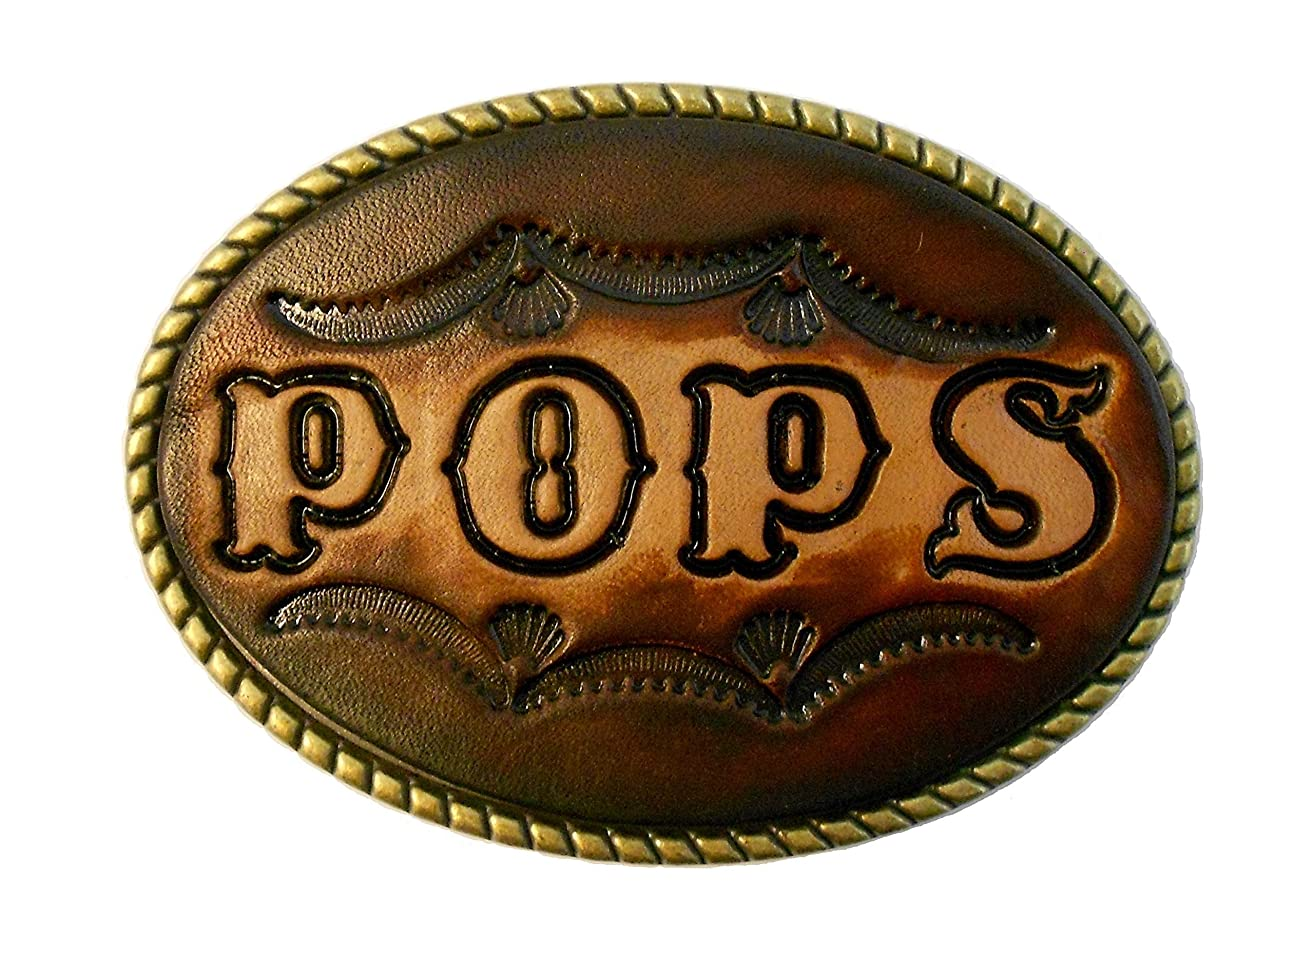 Large Custom Tooled Leather Belt Buckle, MADE to ORDER, Names or Initials Up to 7 Letters